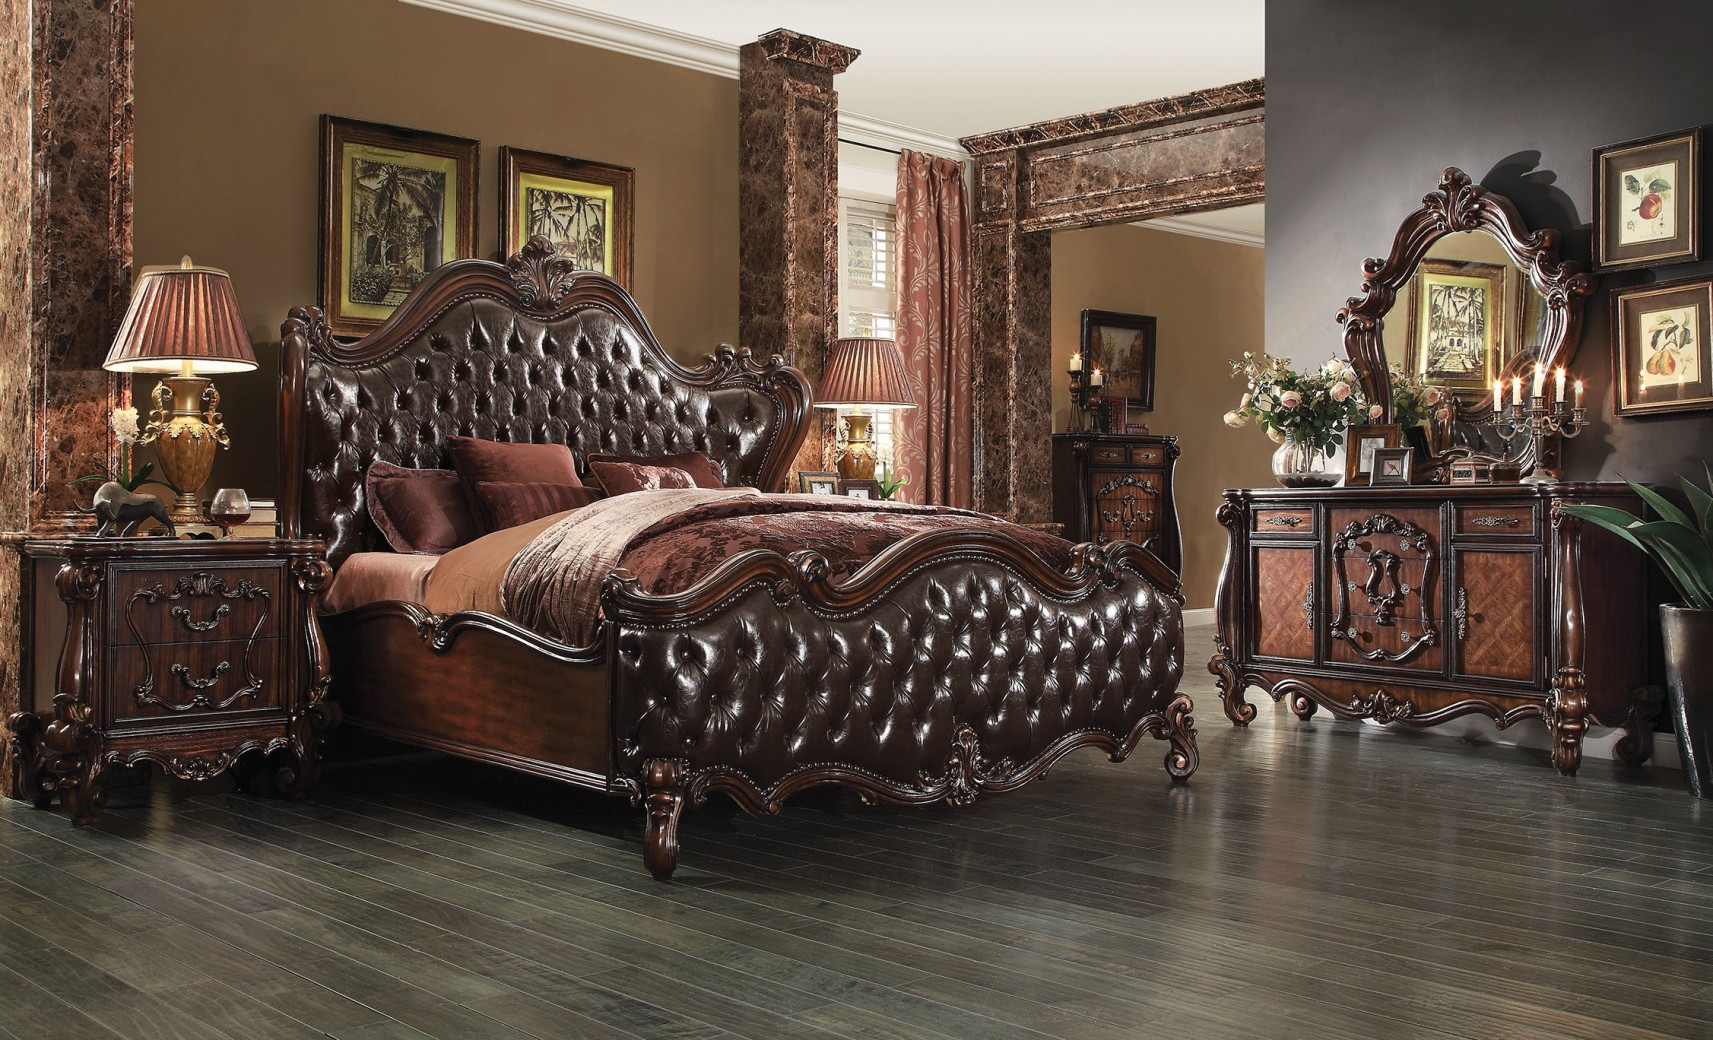 21120 Acme  Versailles Bedroom Set Collection Cherry Oak Finish 2 Tone Dark Brown PU Upholstery